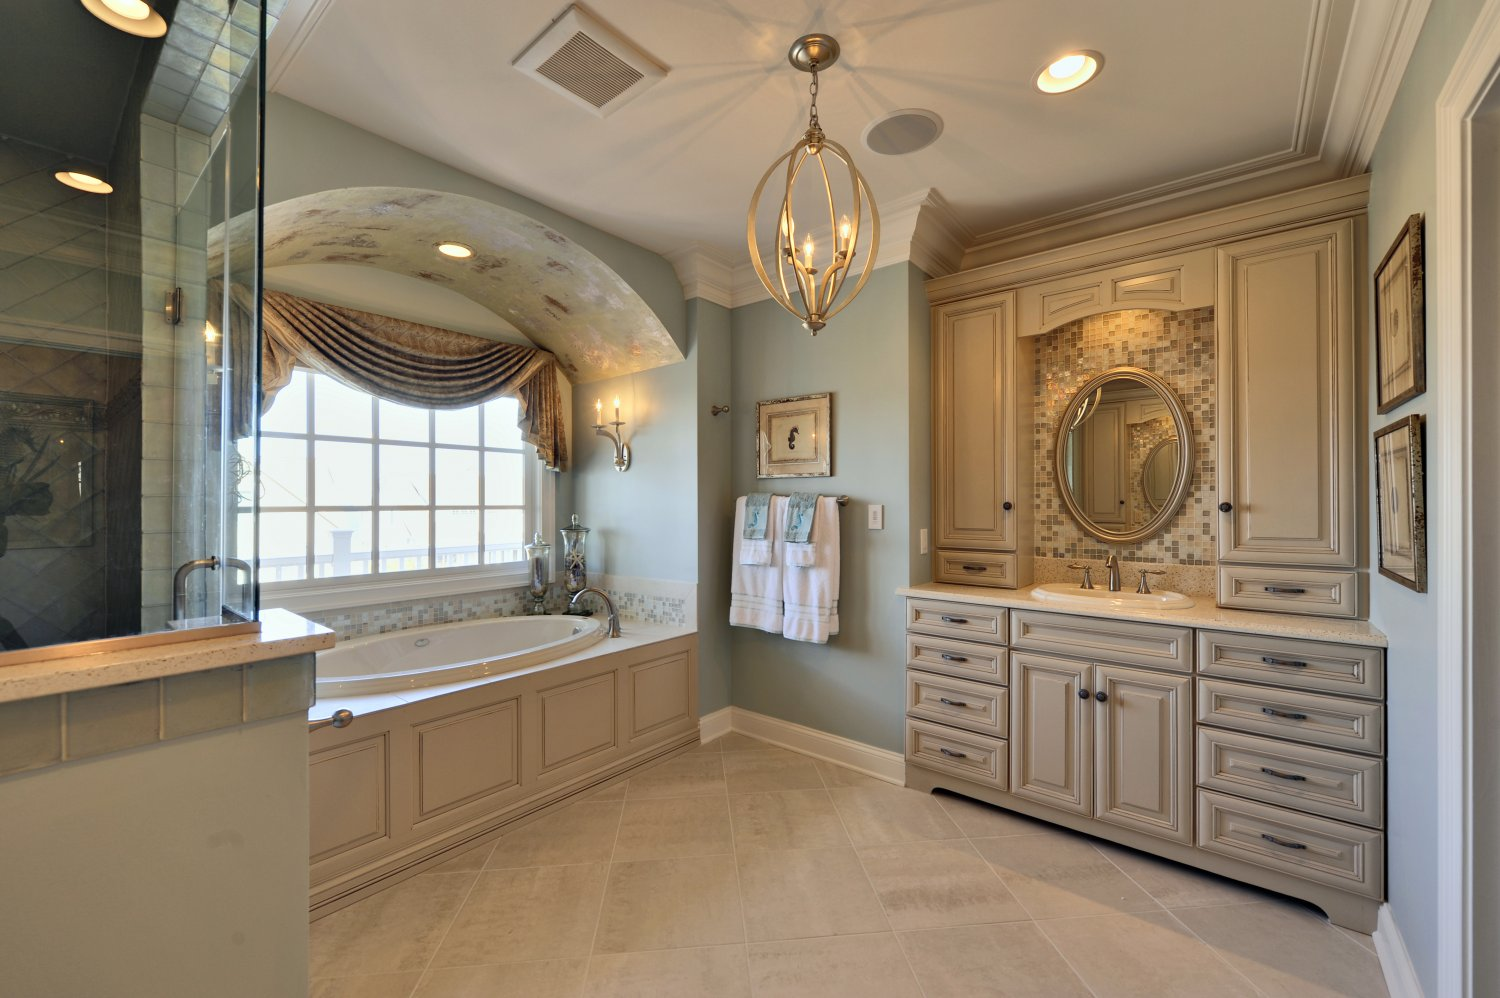 Cape shores photo gallery of custom delaware new homes - Master bathroom ...